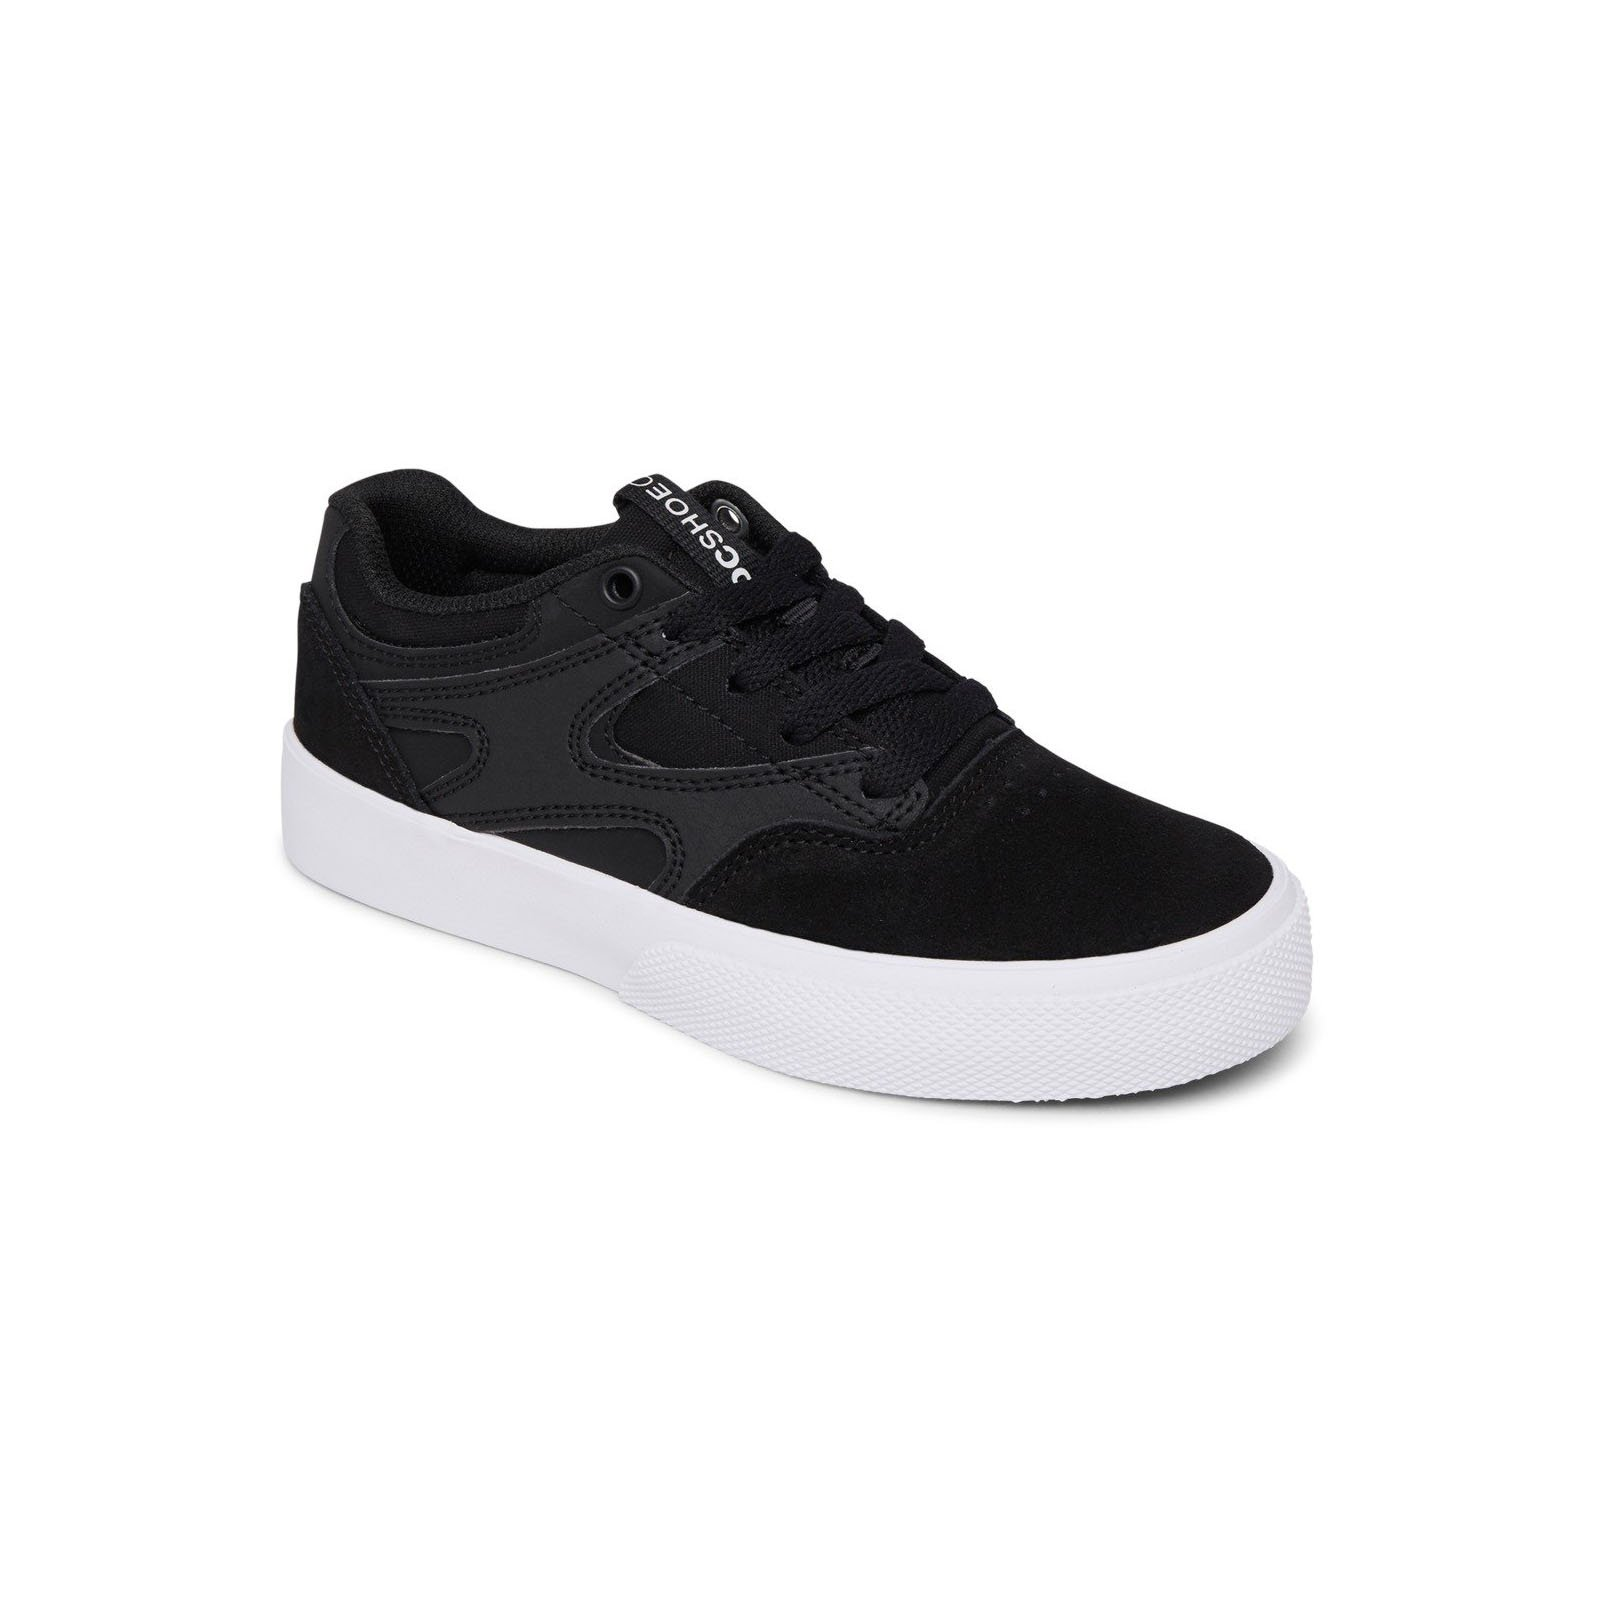 DC Kid's Kalis Vulc Skateboard Shoe